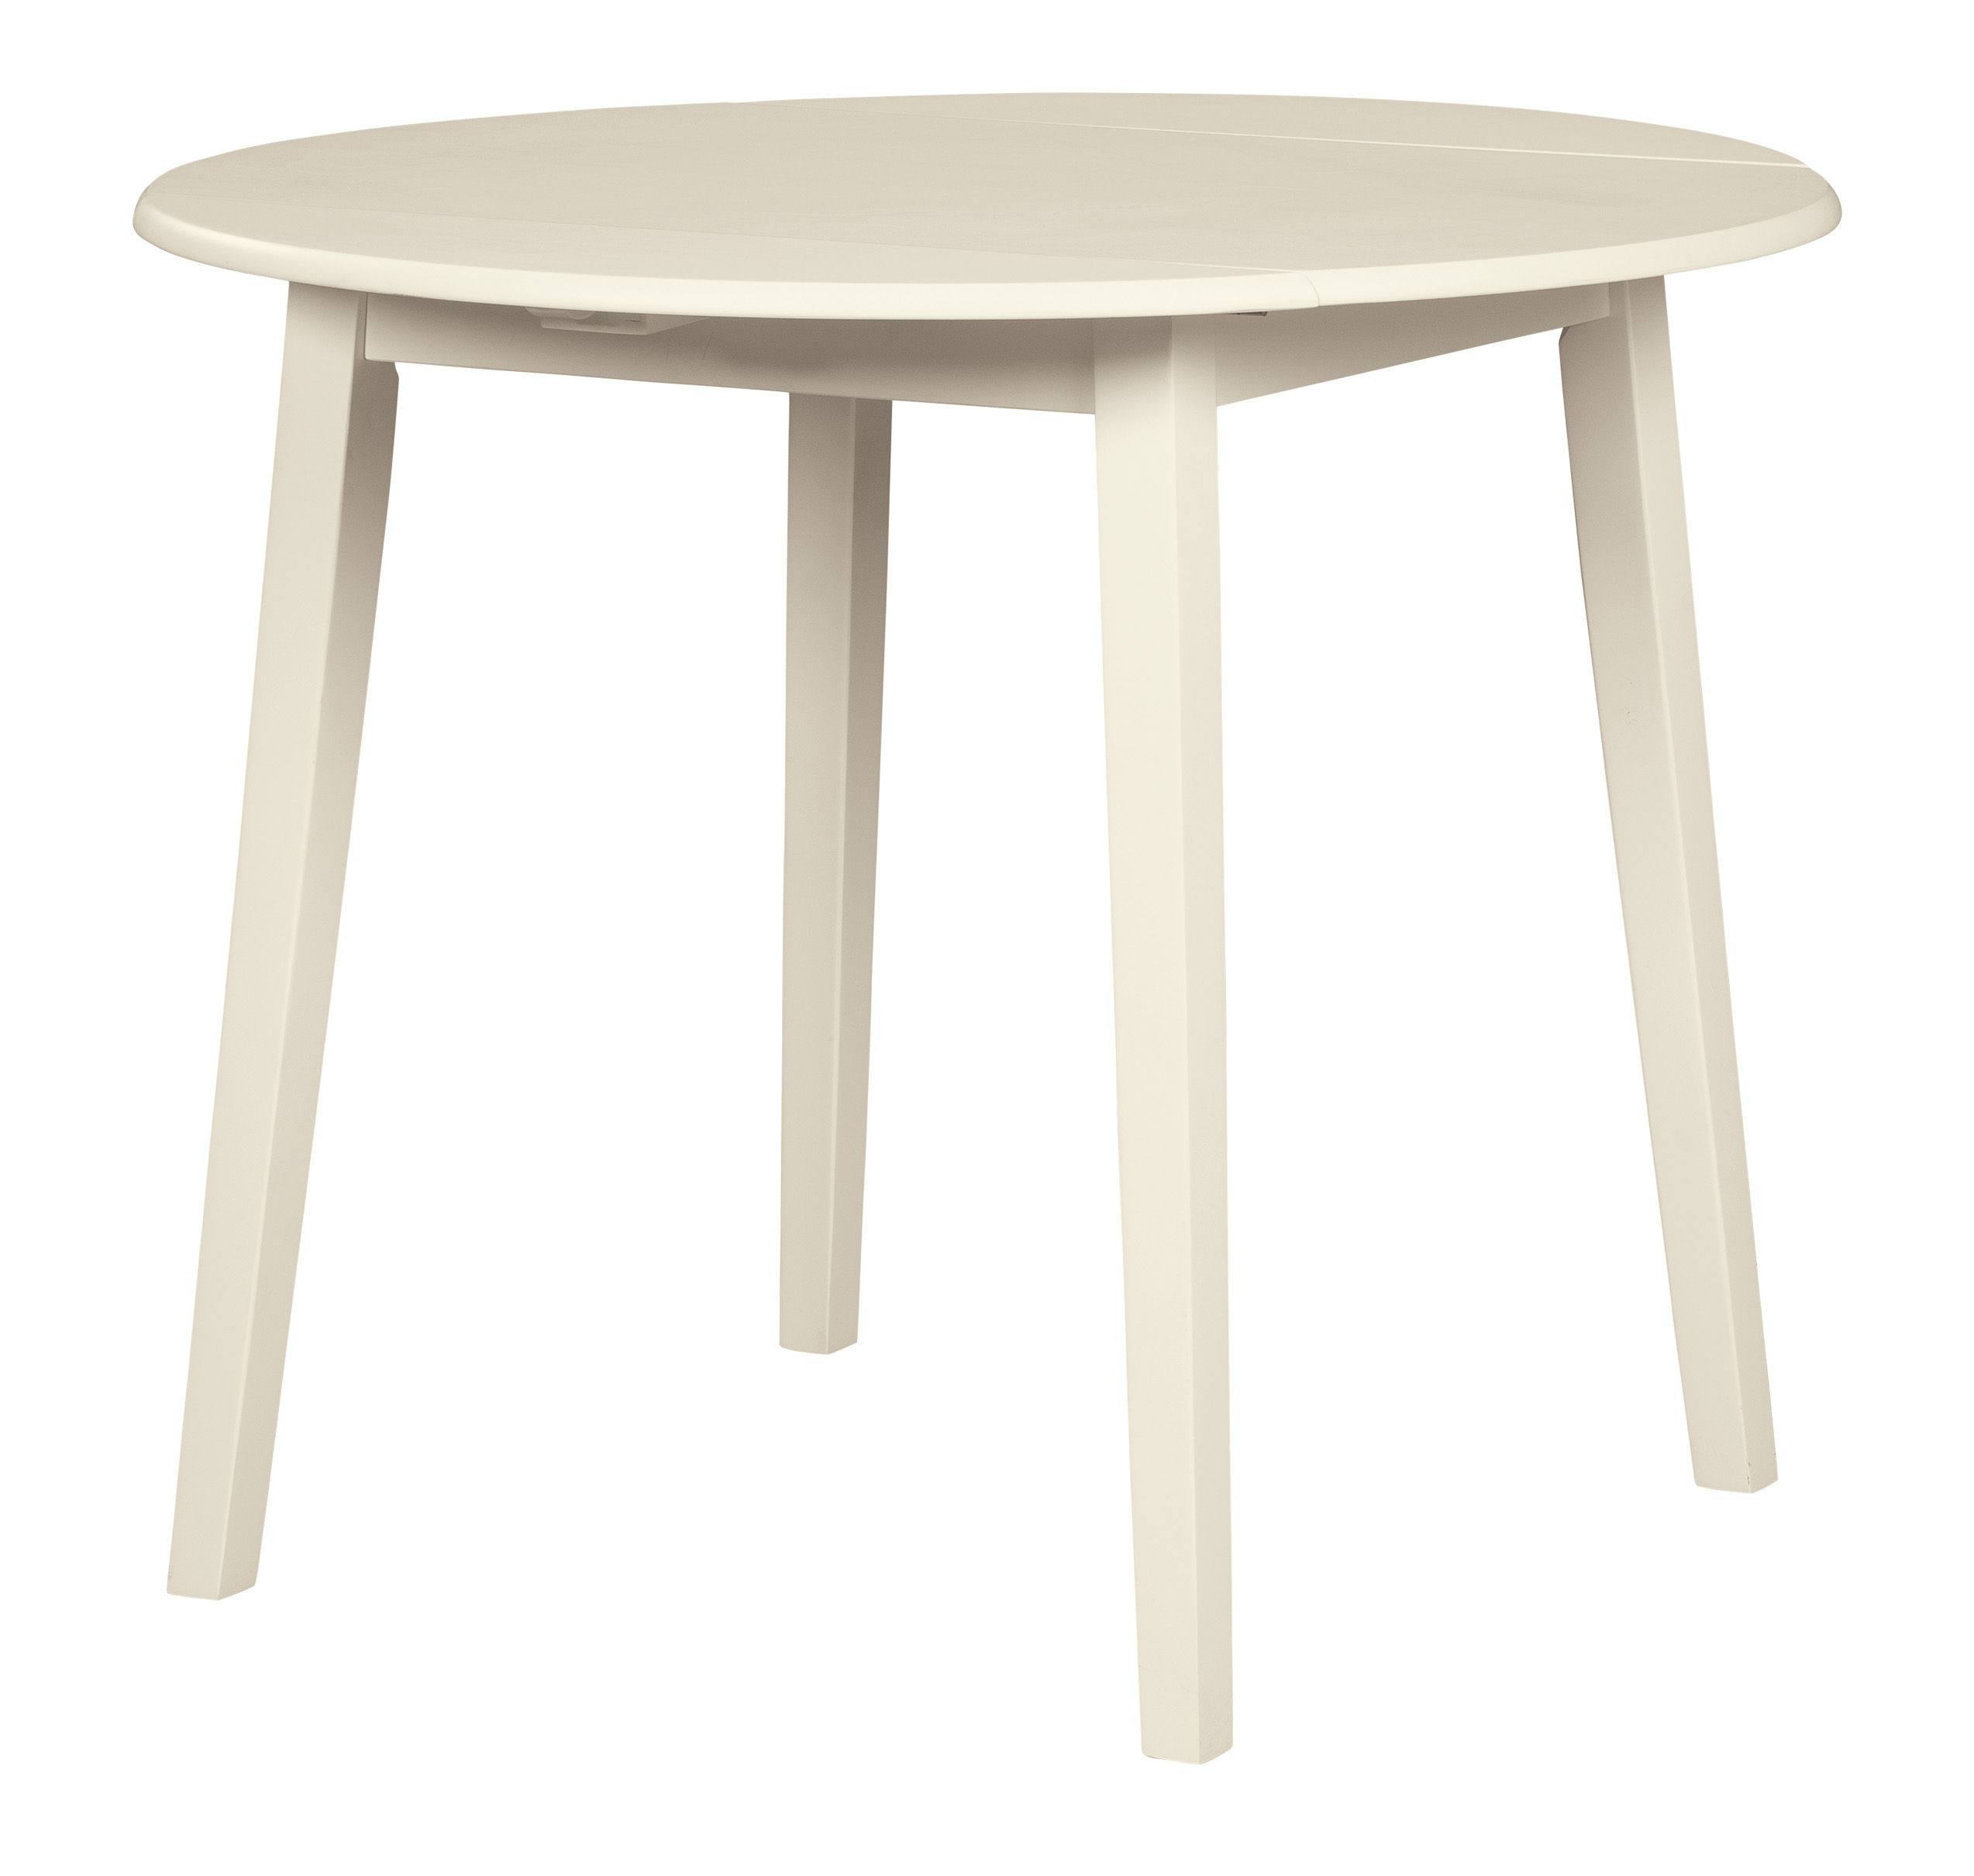 Ashley Furniture Slannery White Round Drop Leaf Dining Table The